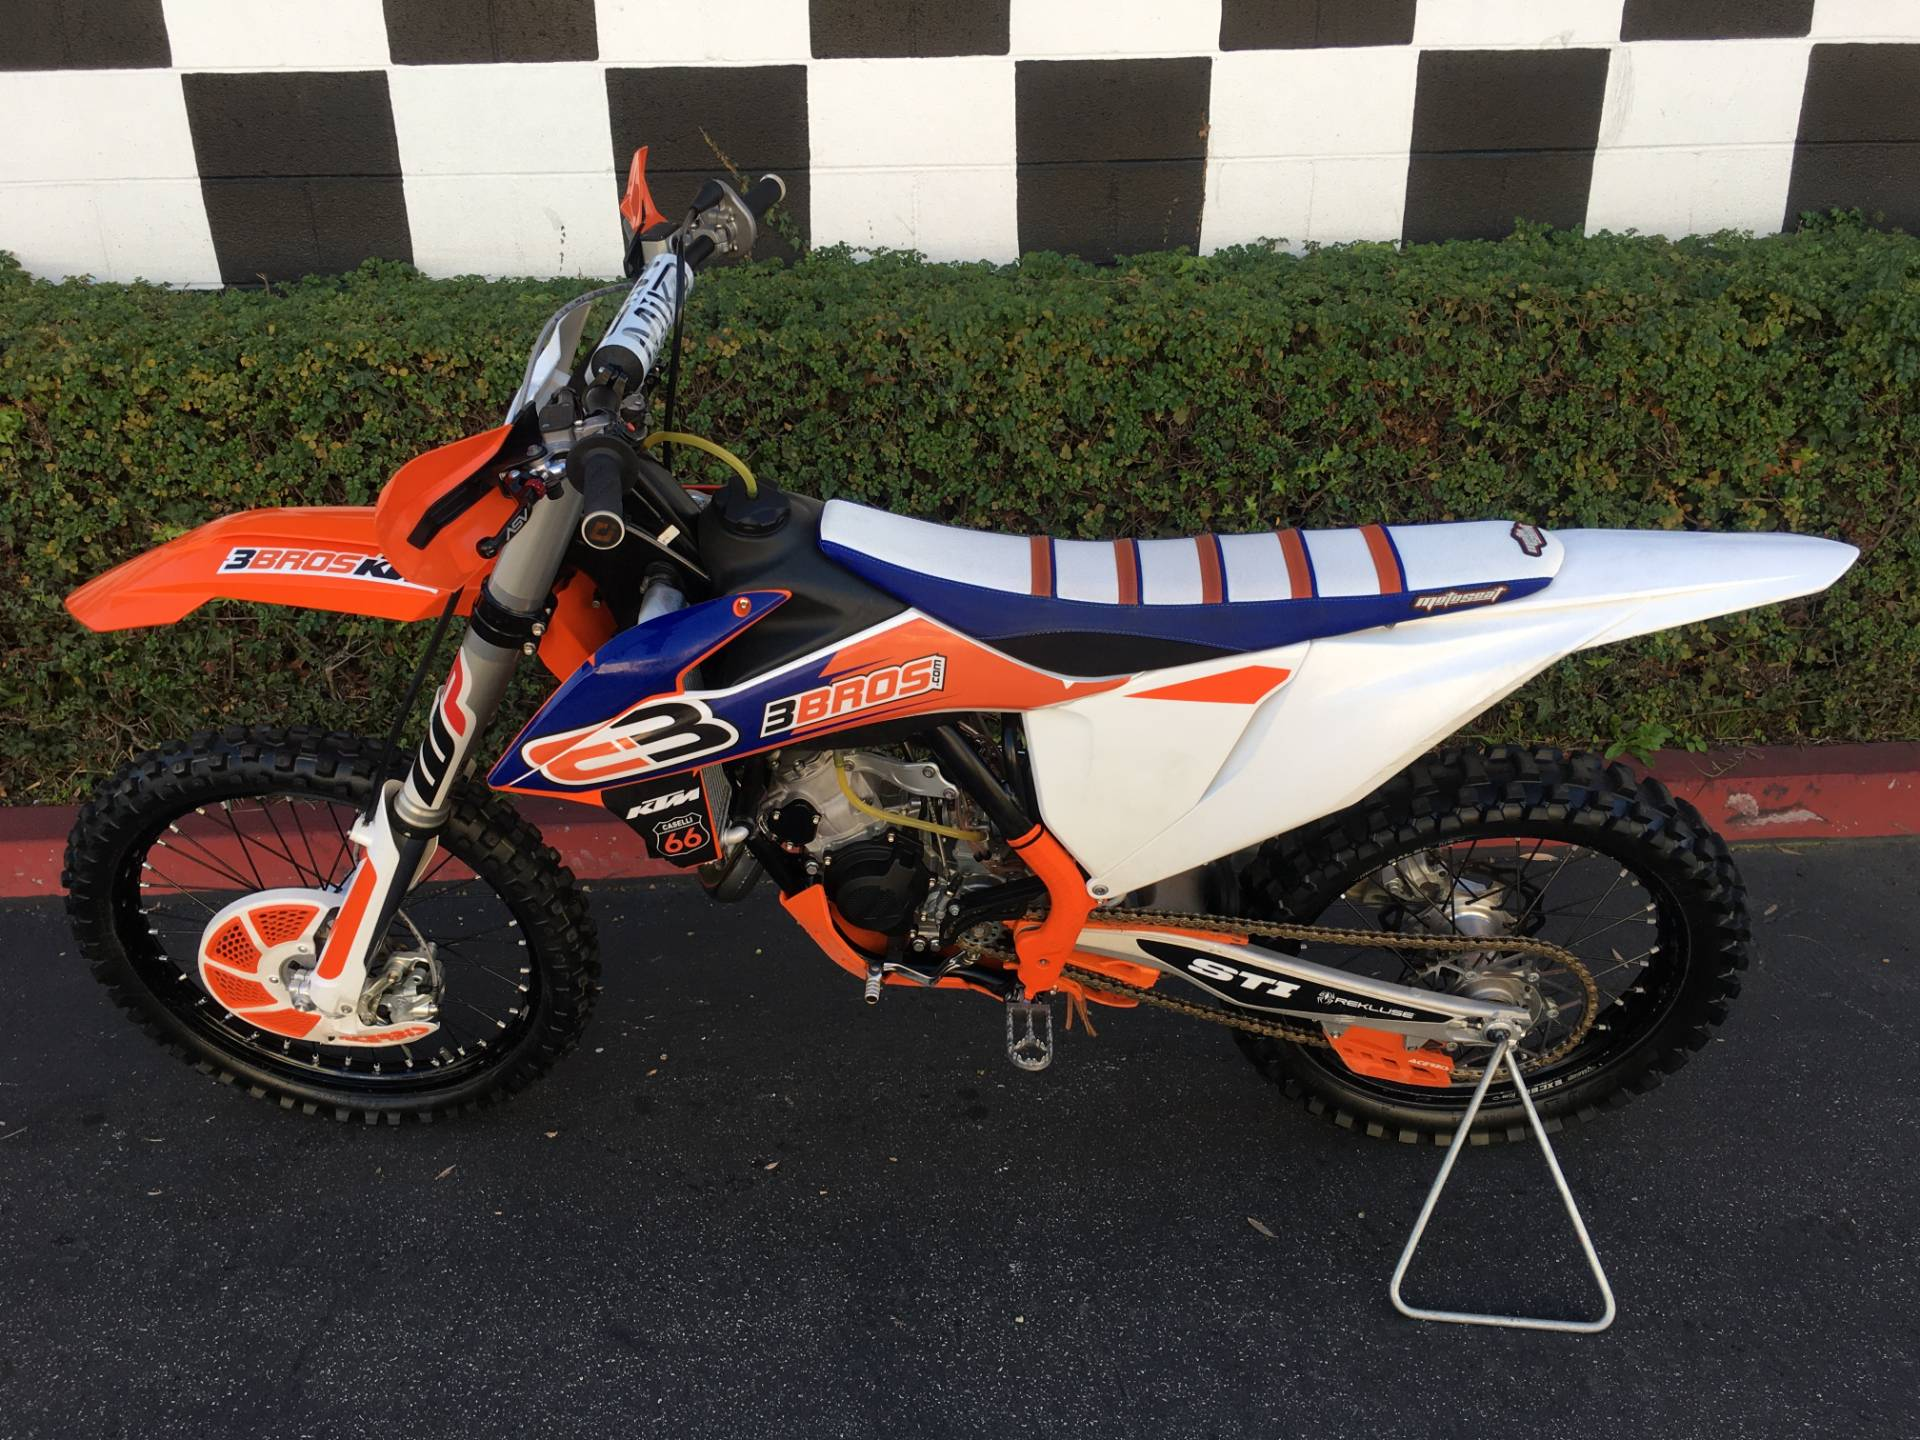 2019 KTM 150 SX in Costa Mesa, California - Photo 2